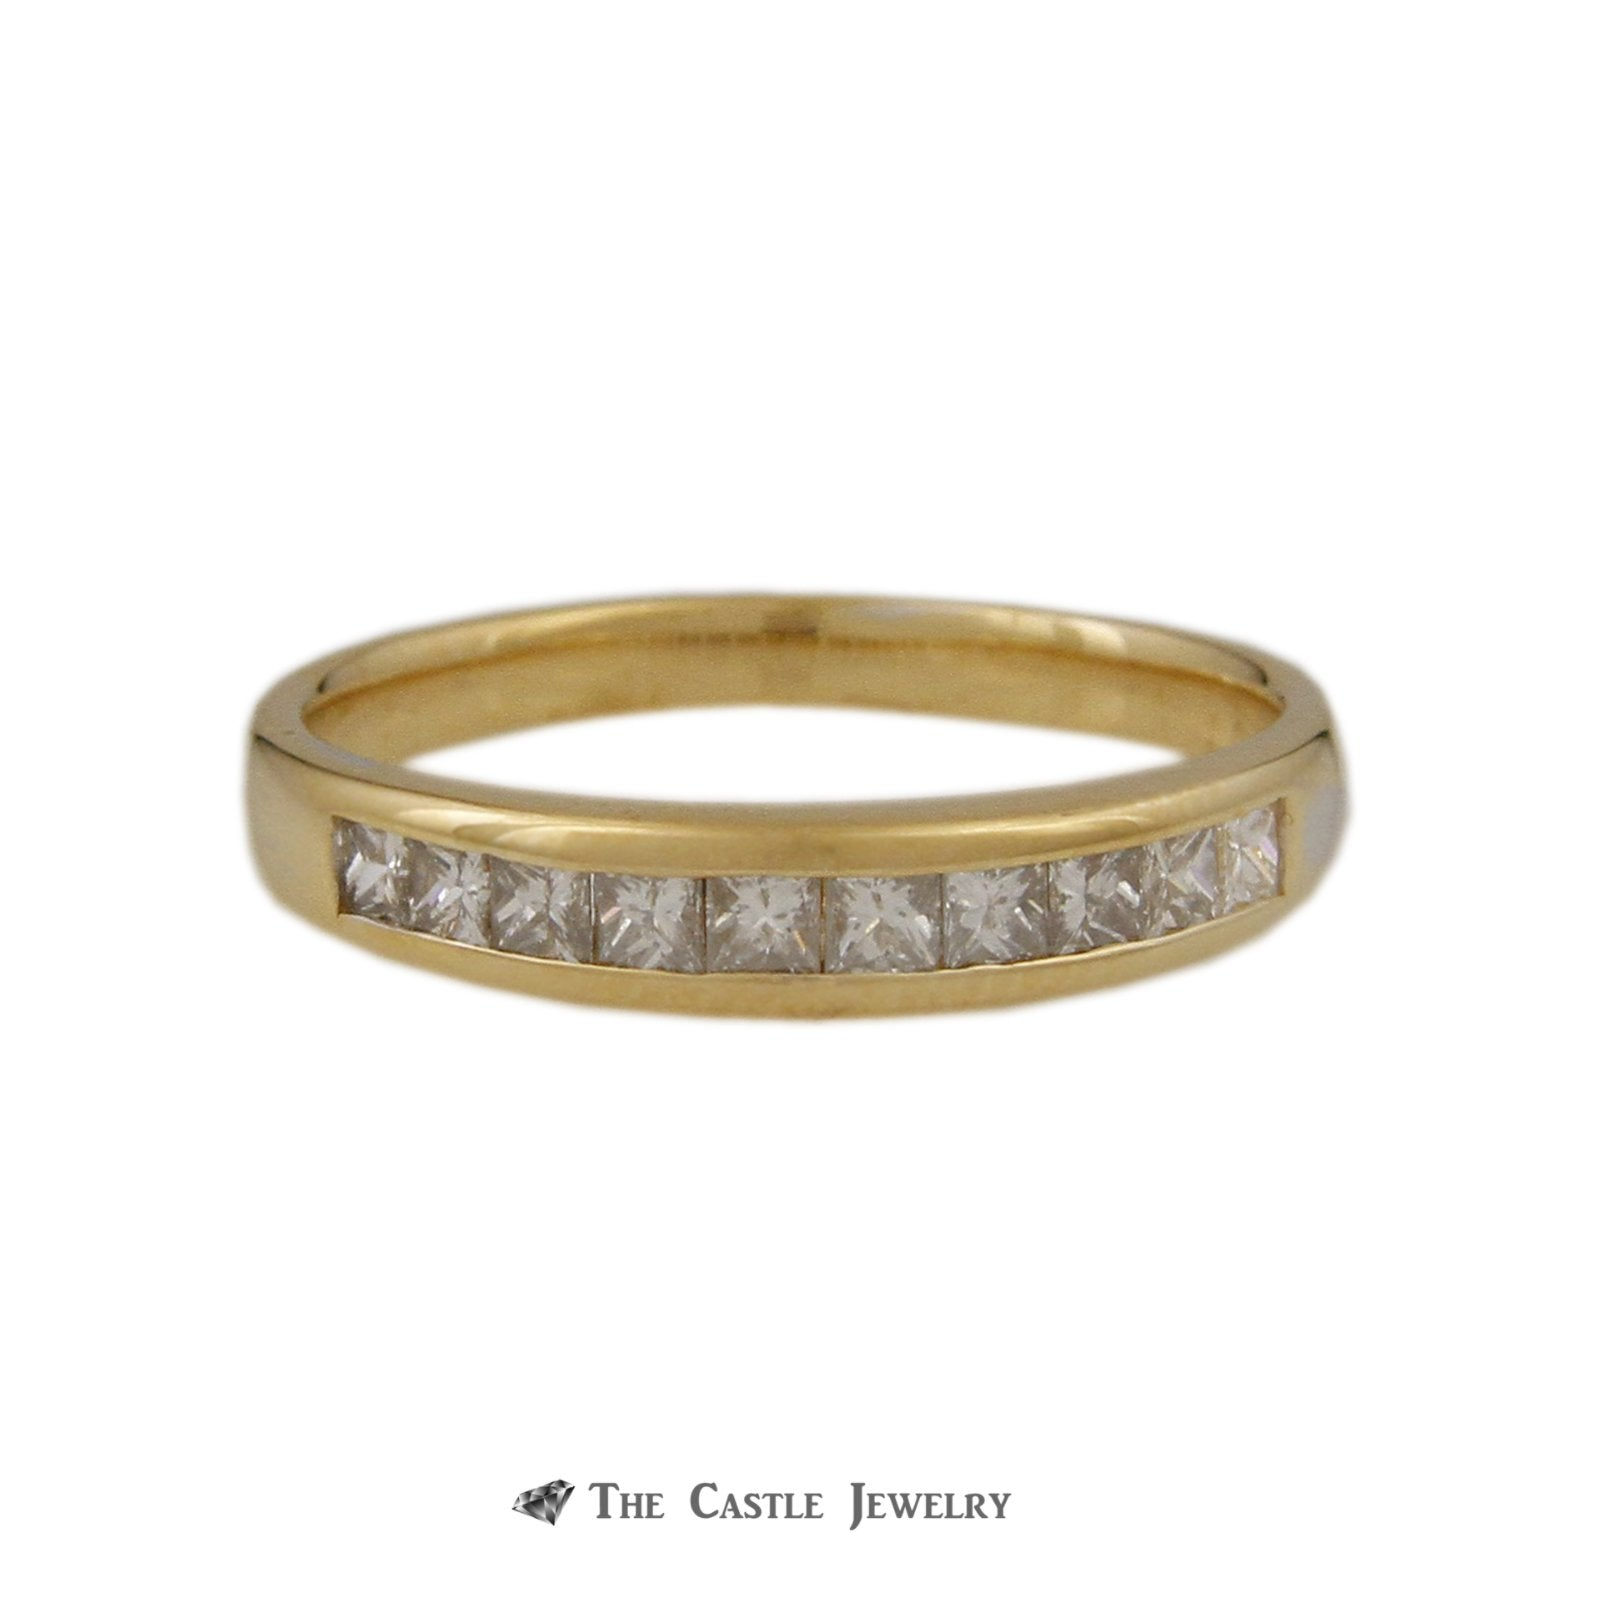 Tiffany & Co. .75cttw Channel Set Princess Cut Diamond Wedding Band